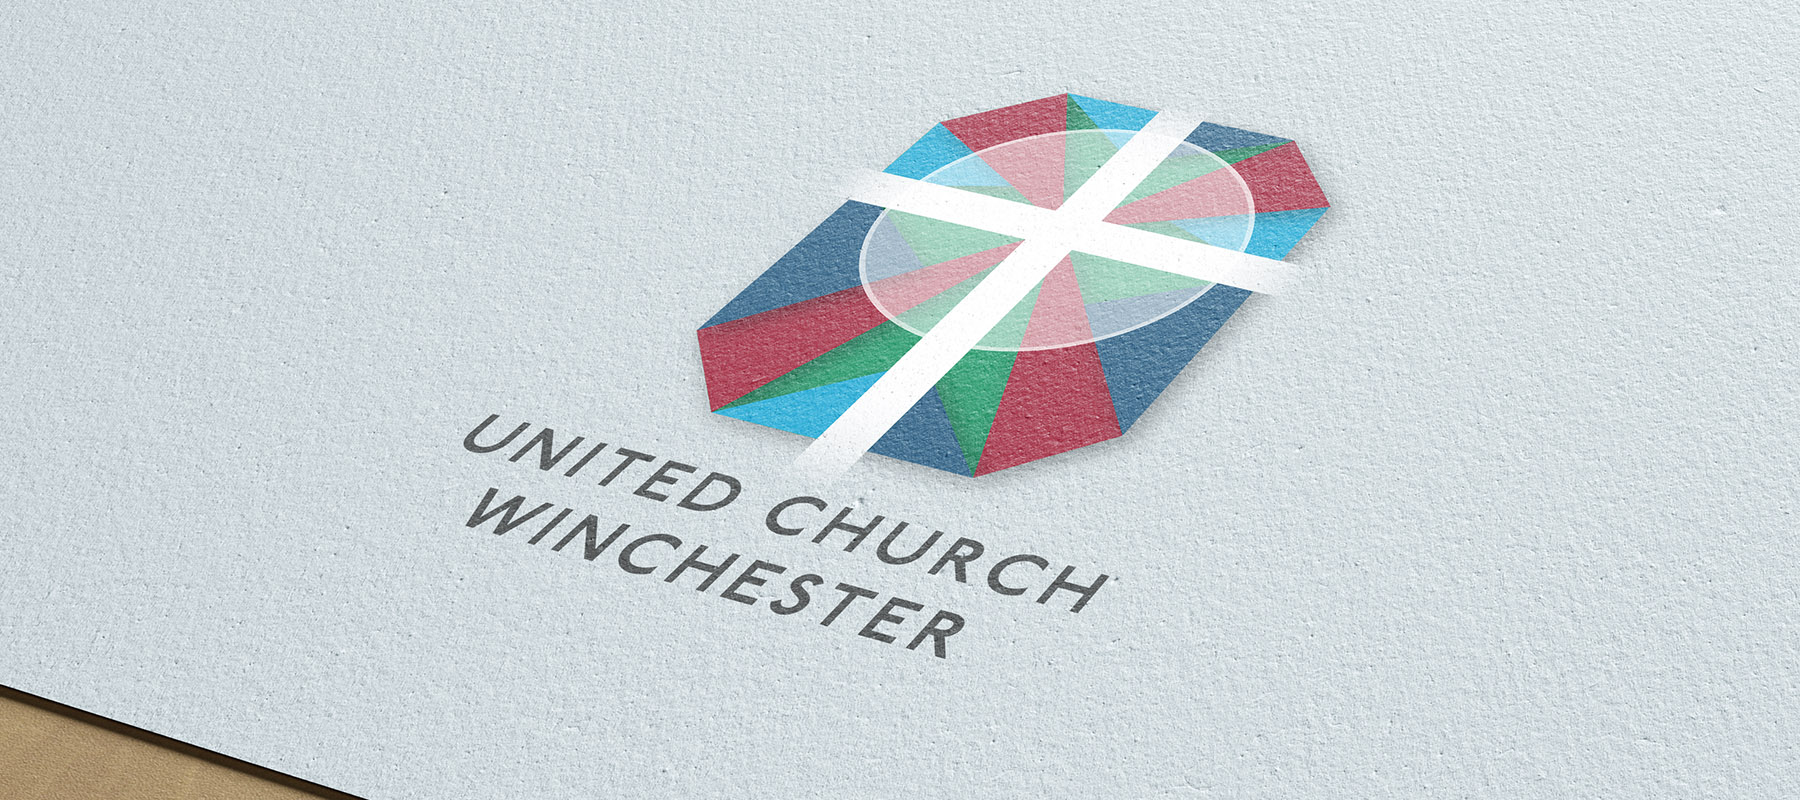 Large version of United Church logo at an angle printed paper